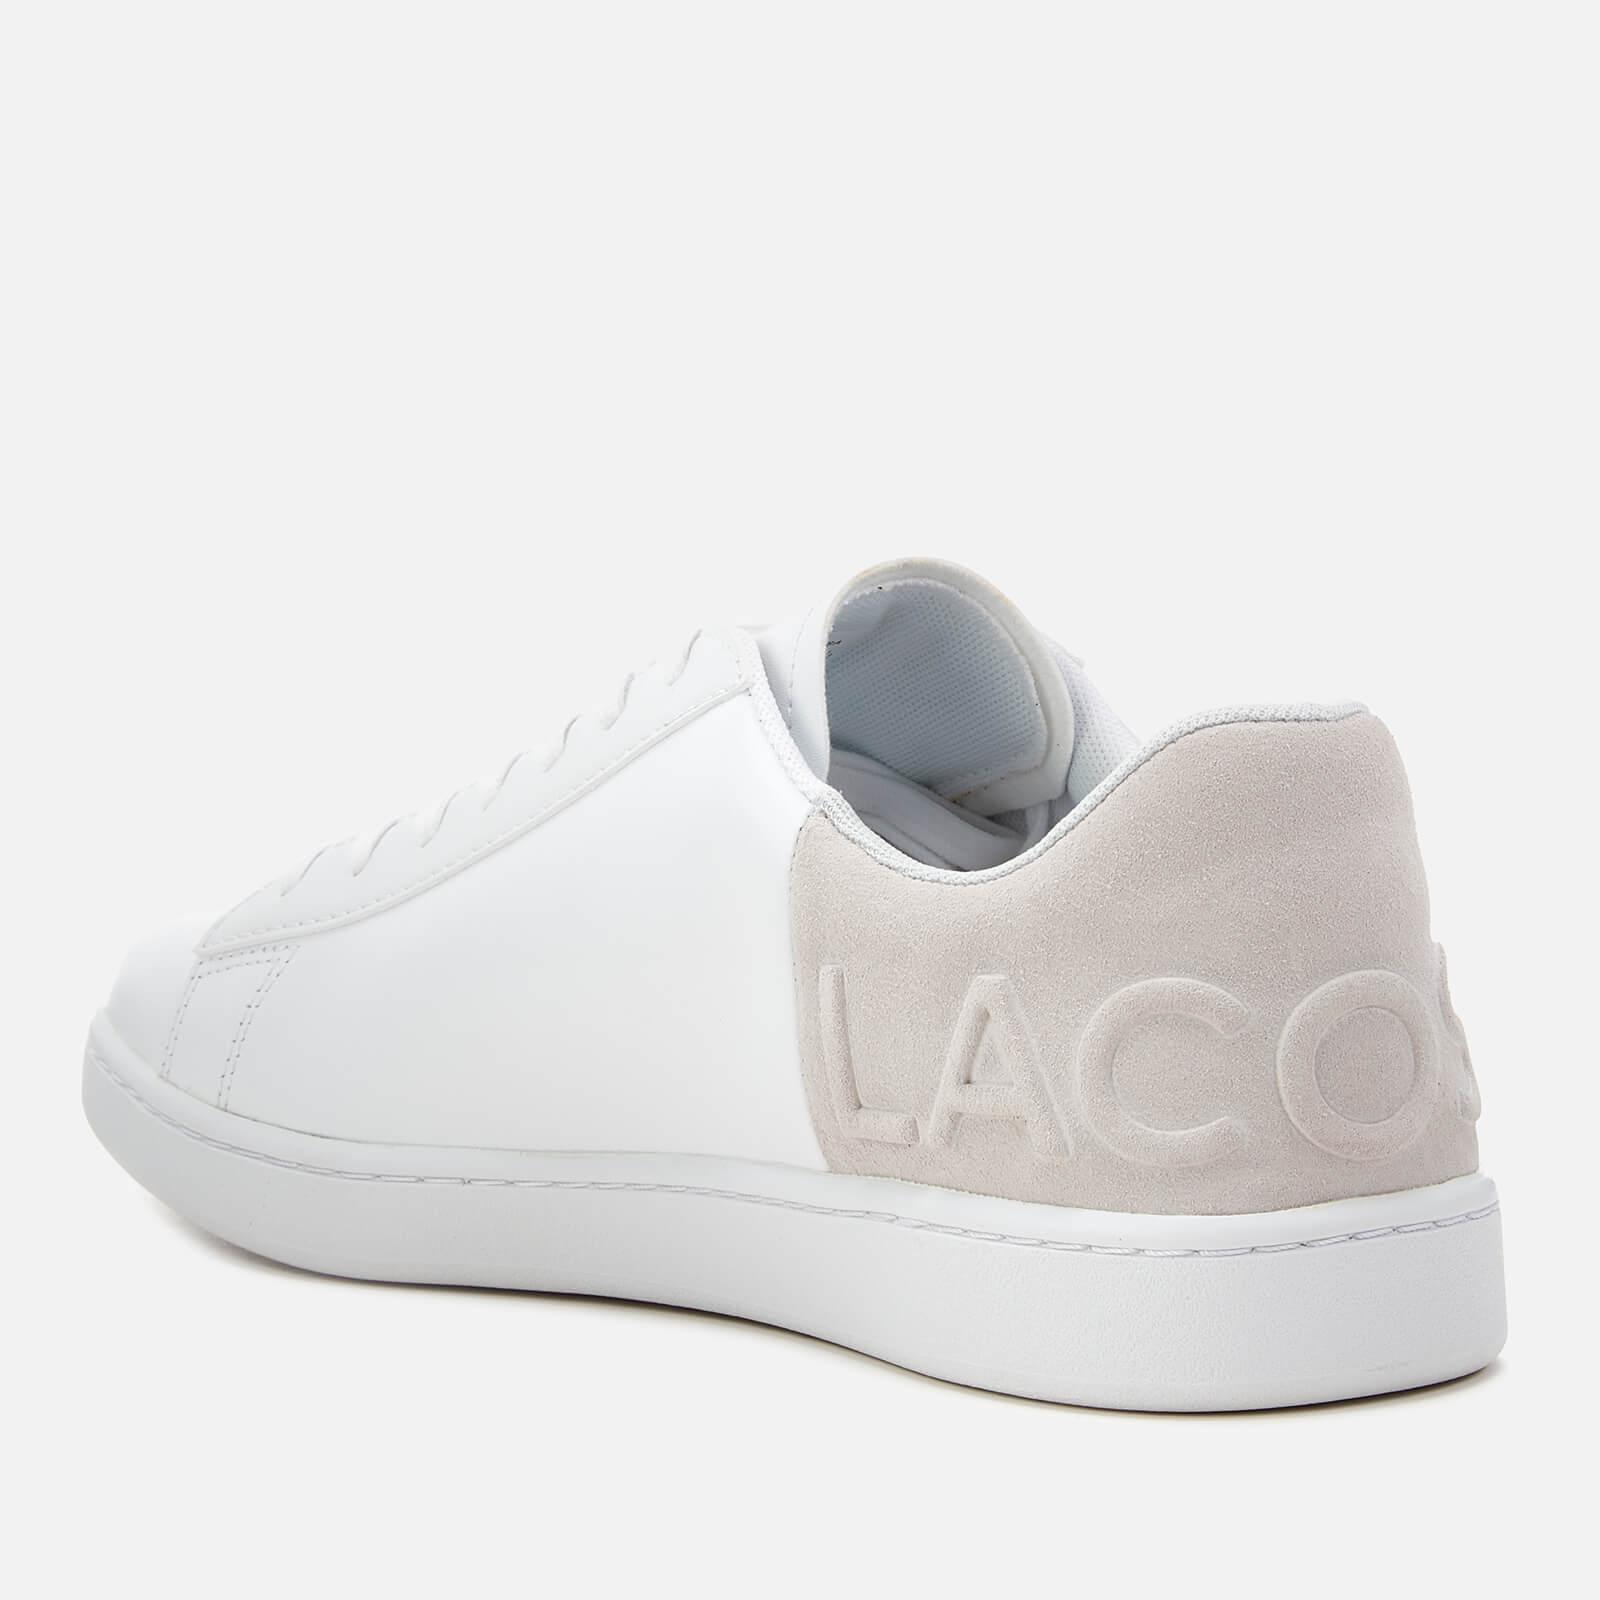 32271e50c21343 Lacoste - White Carnaby Evo 318 6 Leather suede Trainers for Men - Lyst.  View fullscreen